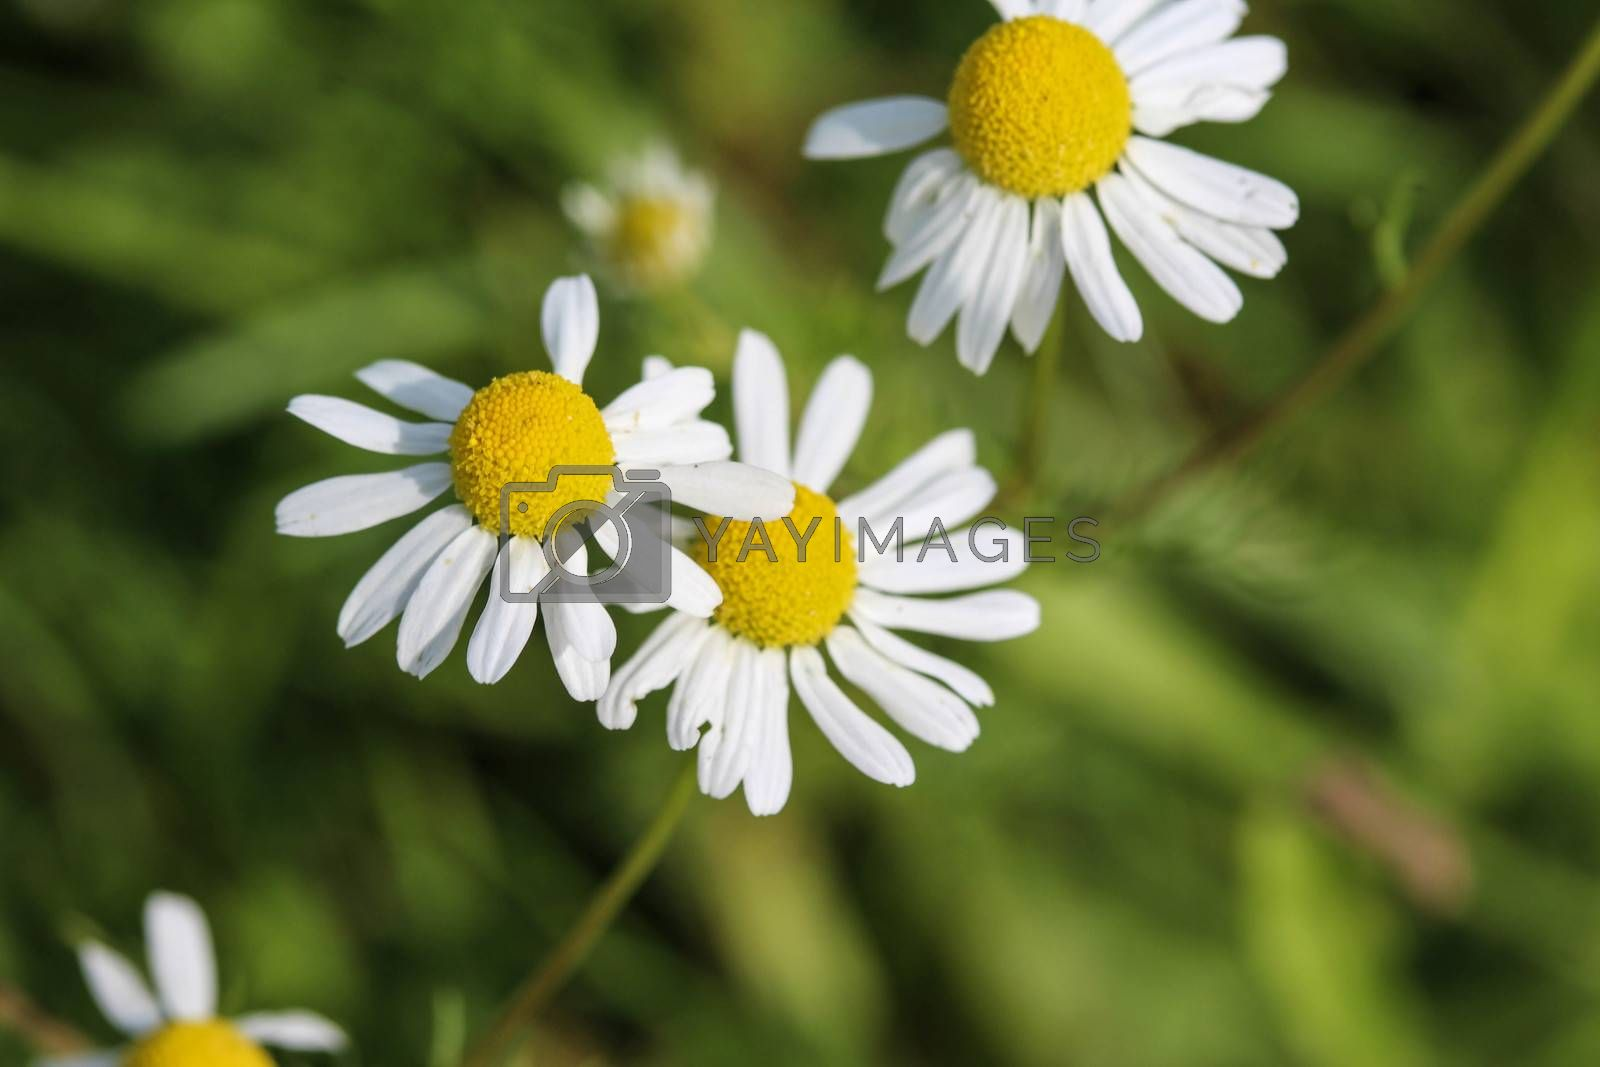 Royalty free image of Matricaria chamomilla, commonly known as chamomile , Italian camomilla, German chamomile, Hungarian chamomile (kamilla), wild chamomile or scented mayweed, blooming in the summer seasonM by michaelmeijer